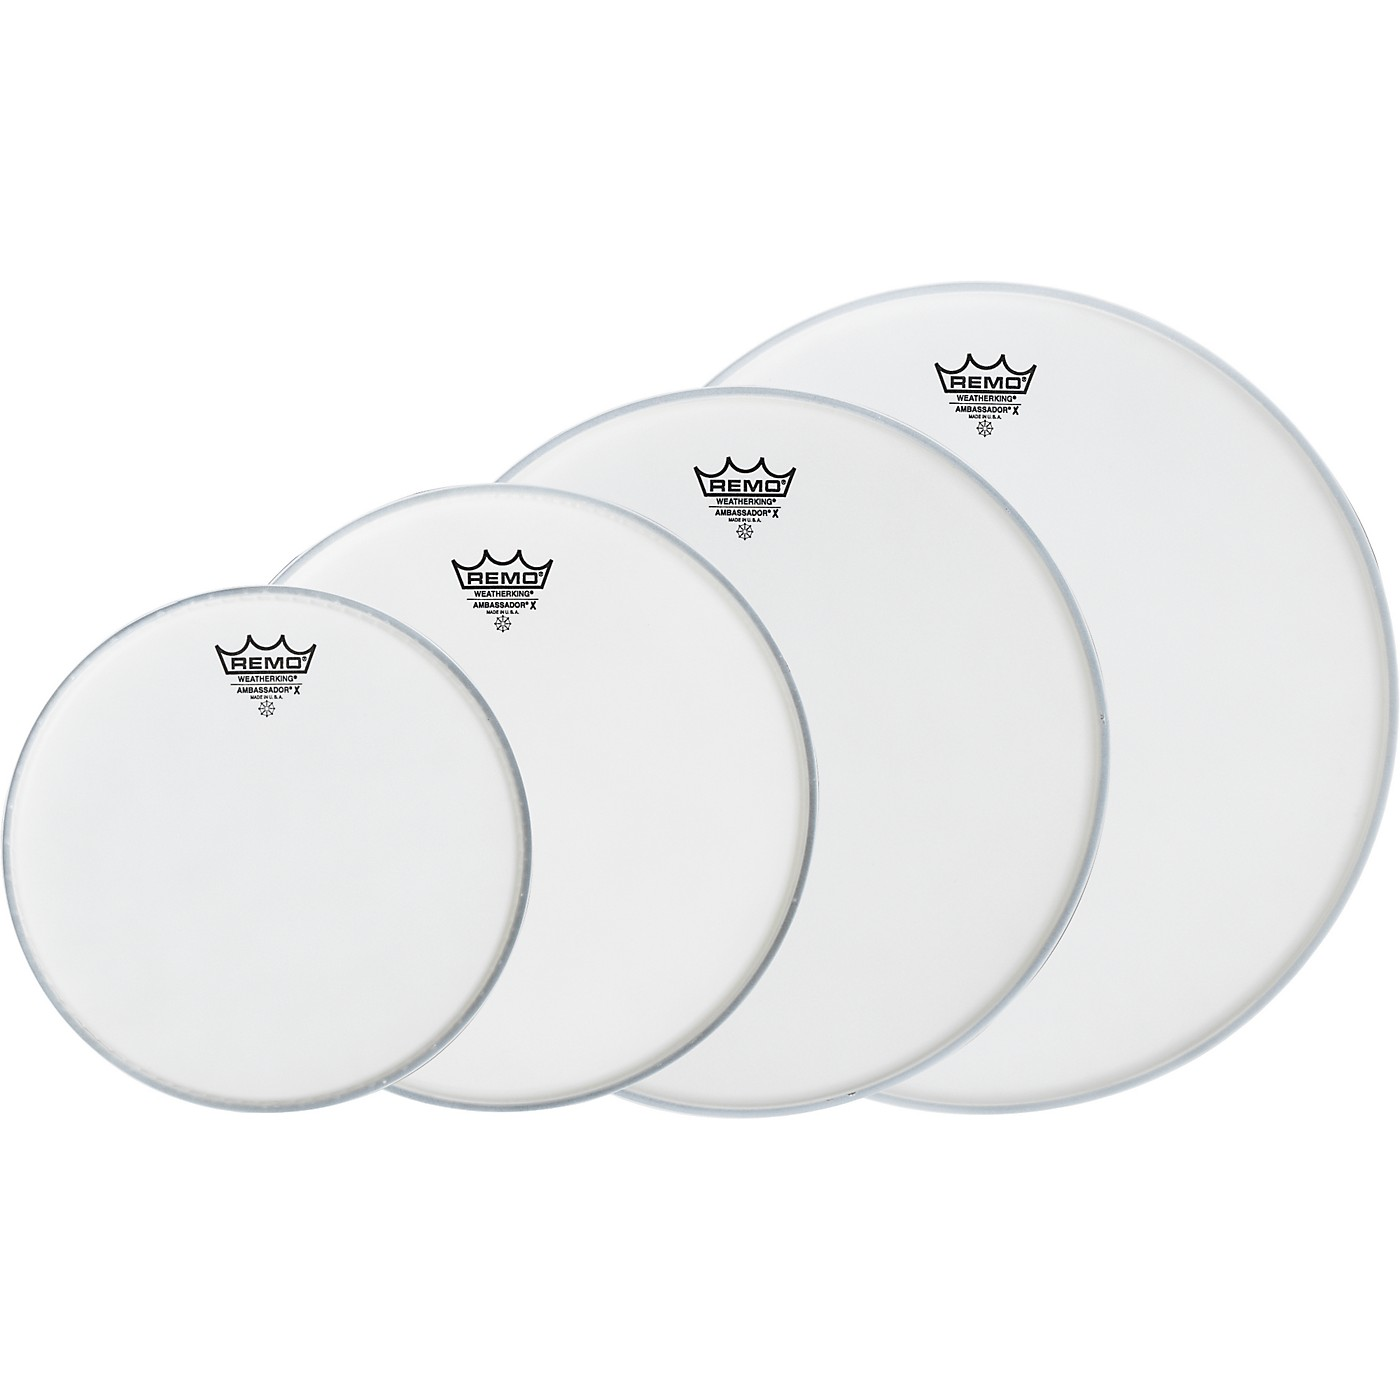 Remo Ambassador X New Fusion Drumhead Pack, Buy 3 Get a Free 14 Inch Head thumbnail